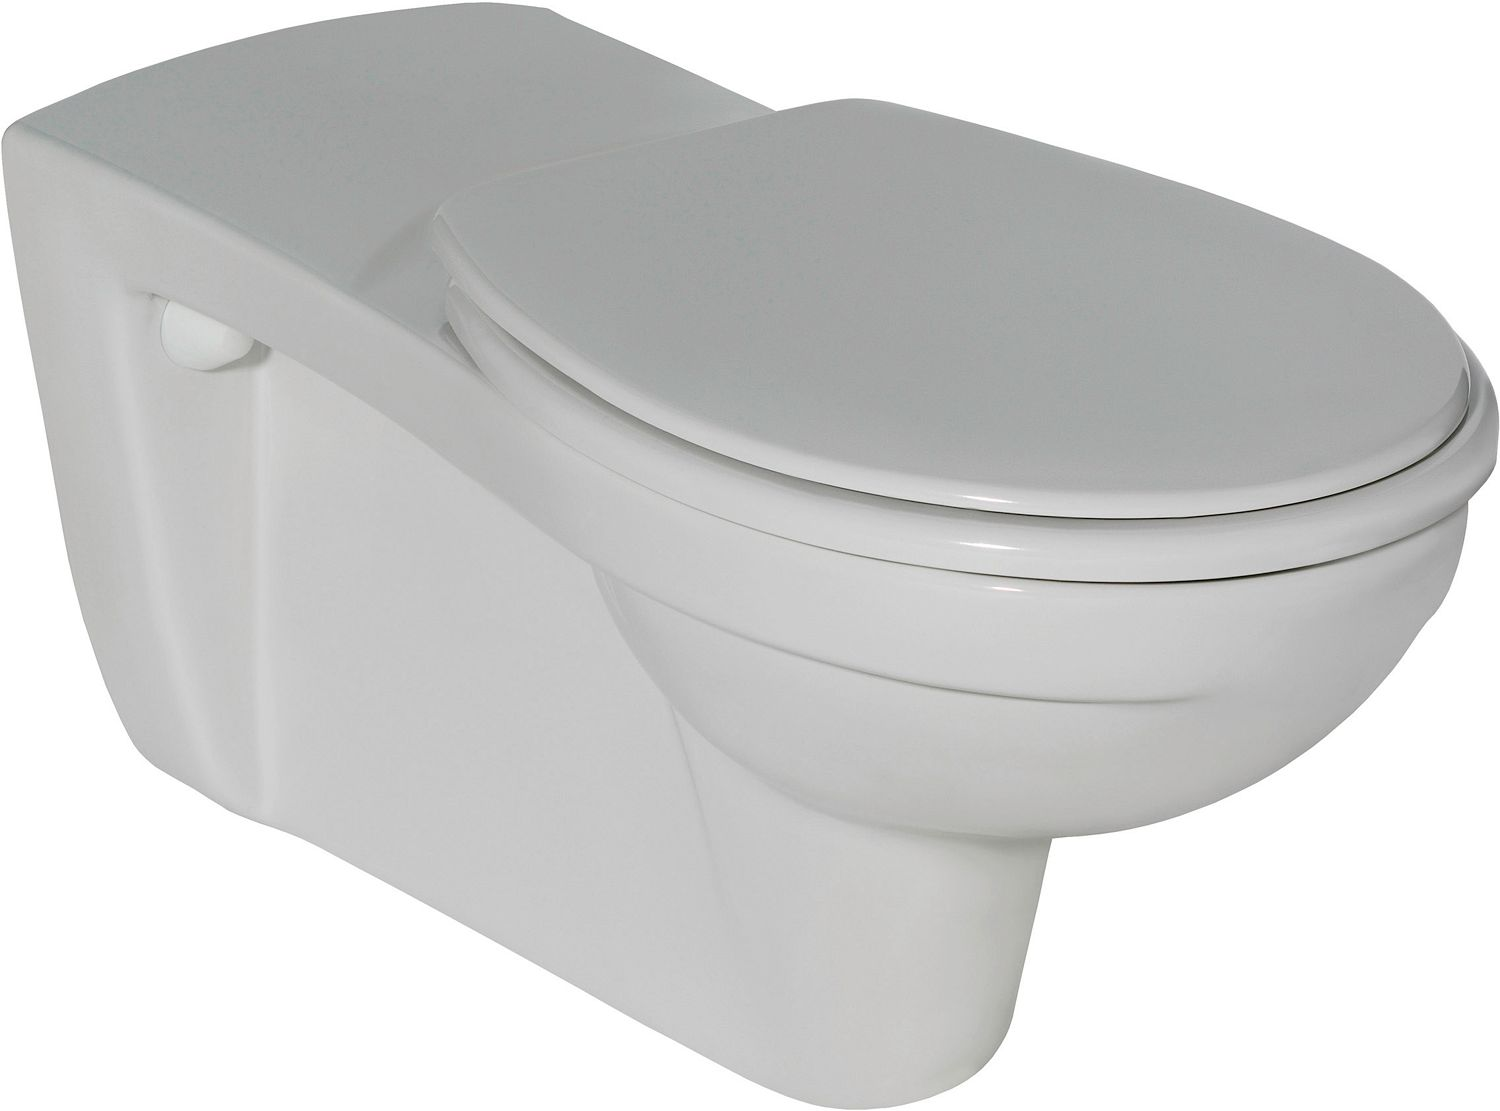 WC SUSPENDU PMR CONTOUR 21 IS BLANC